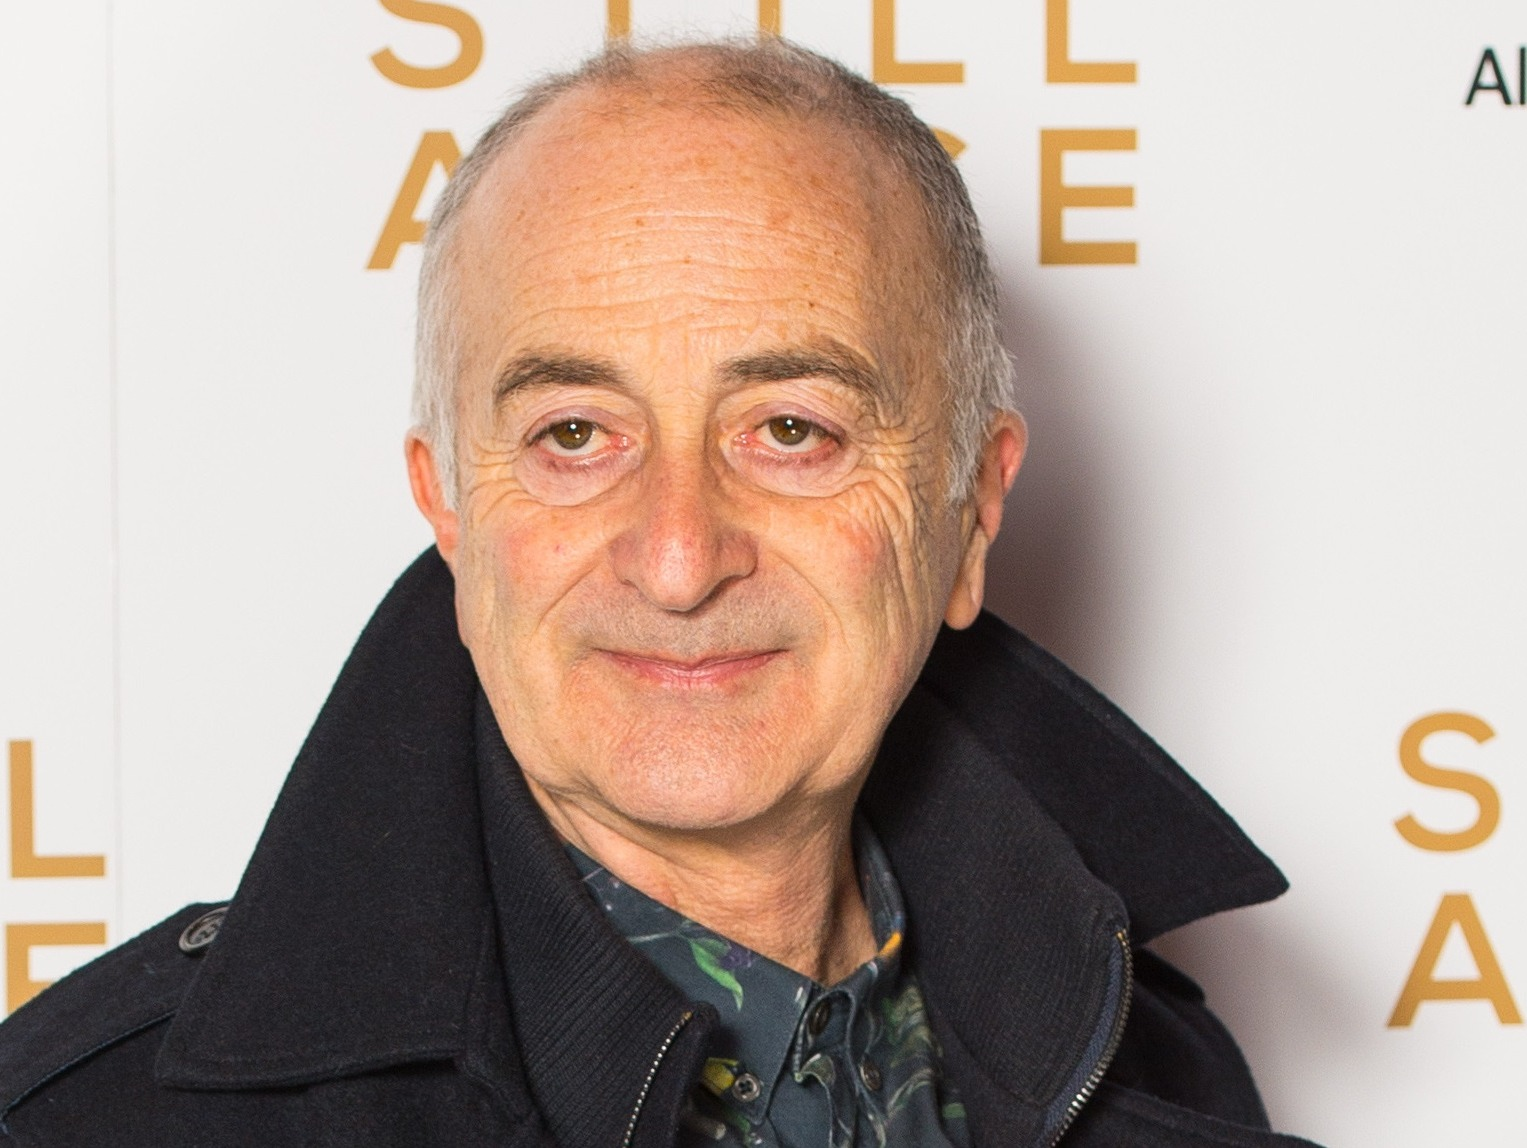 Blackadder return is 'on the cards', says Sir Tony Robinson - ITV News